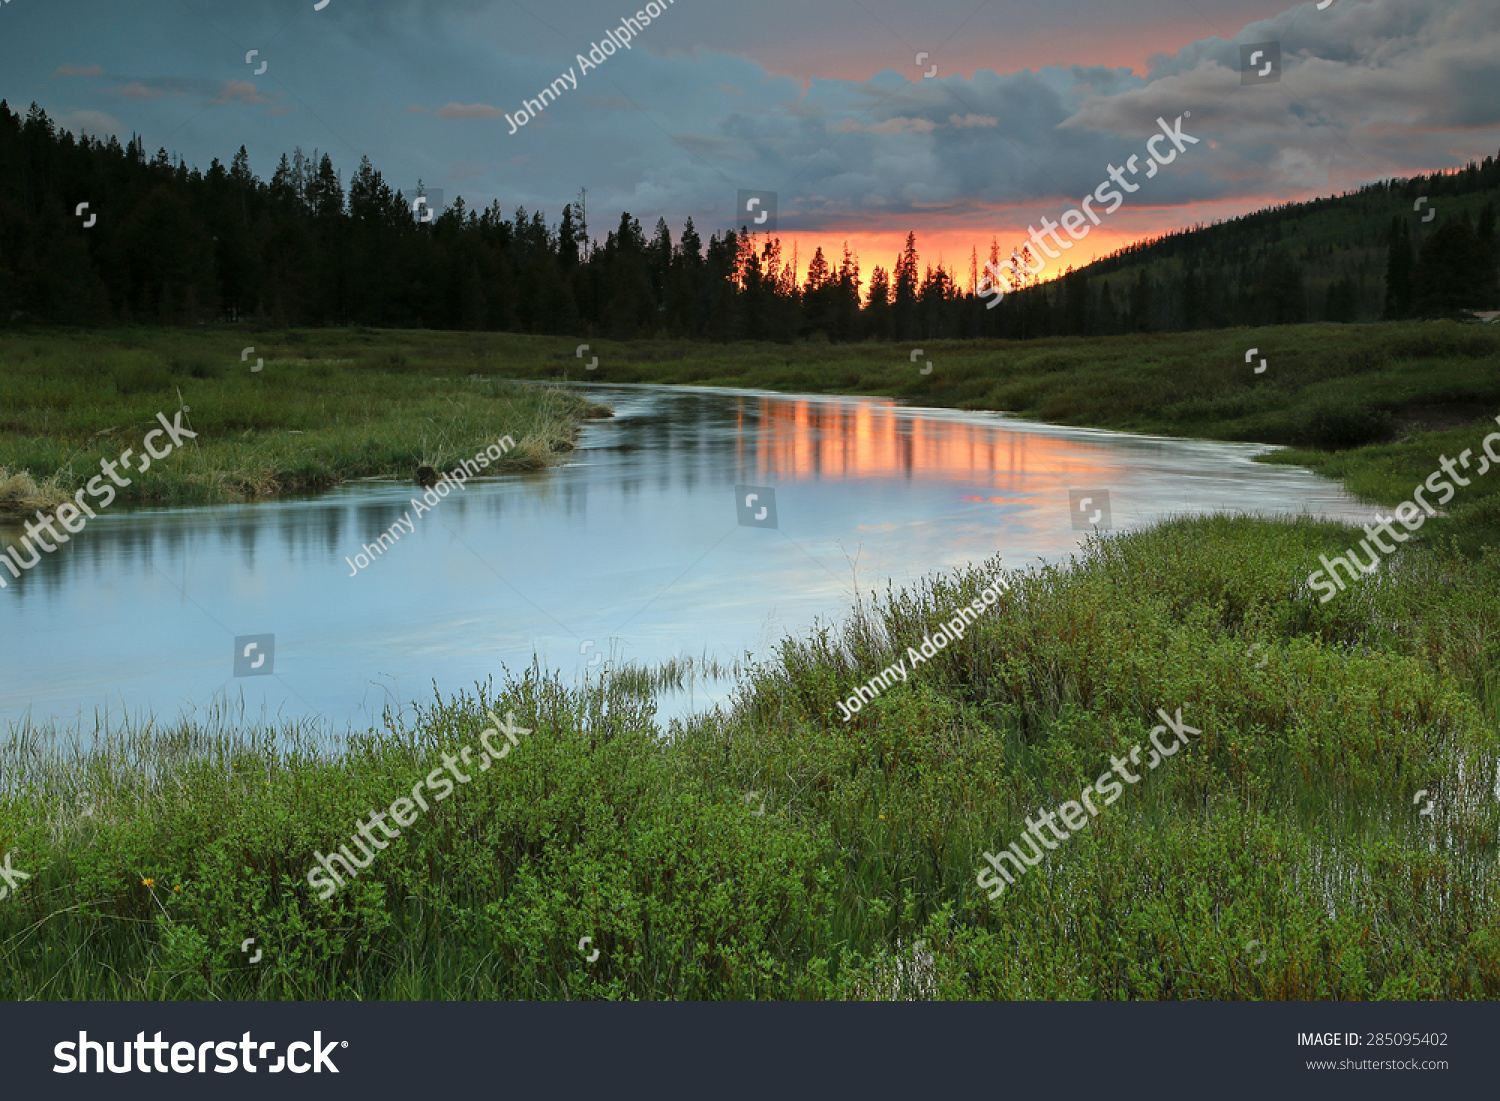 Serene Sunset Landscape By Bear River Stock Photo ...